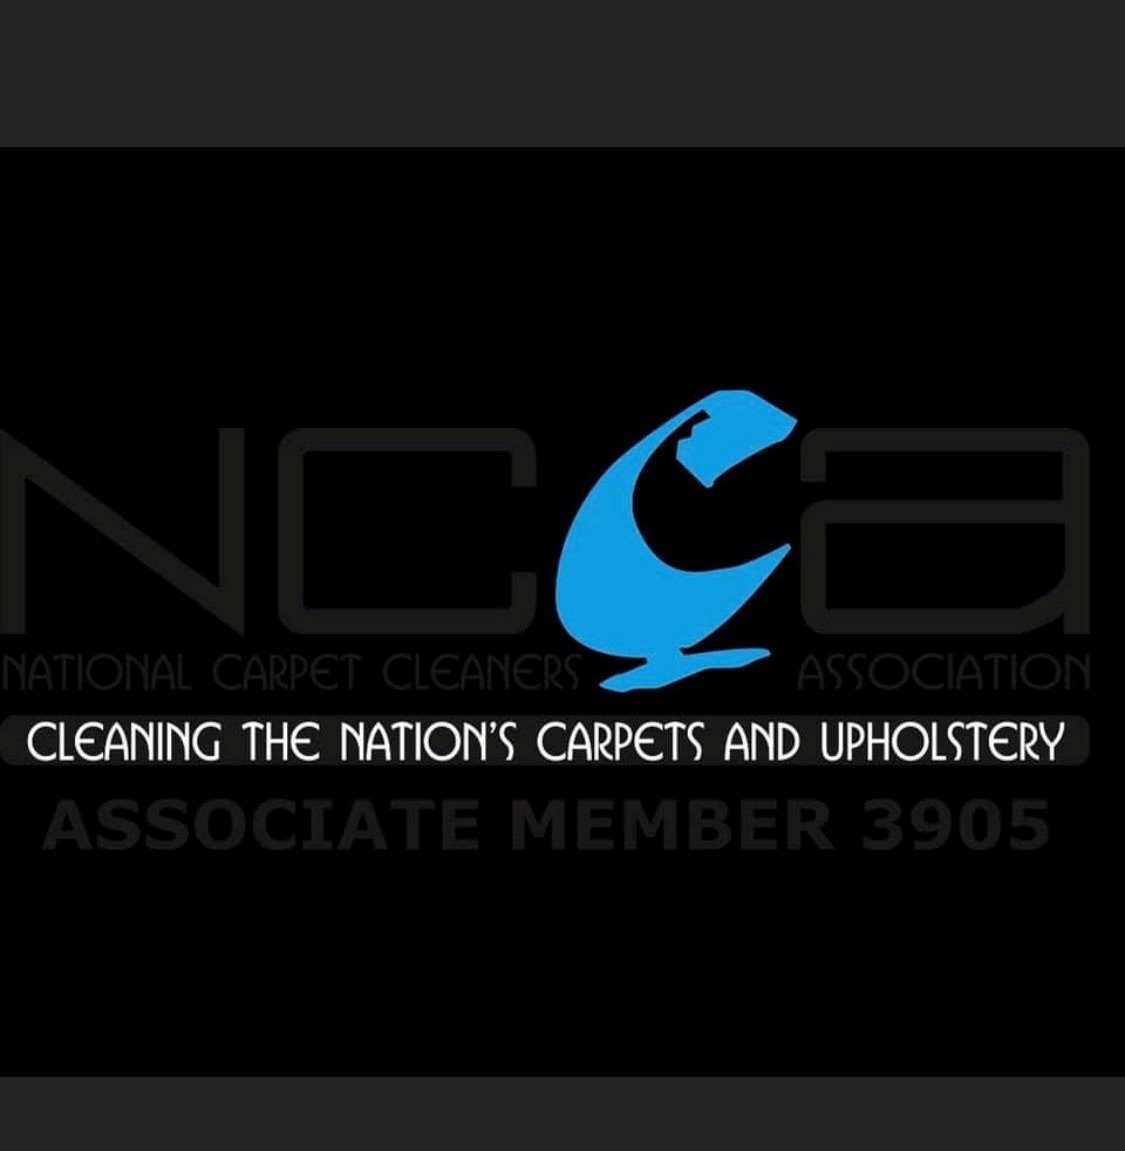 Carpet & Upholsetry Cleaning